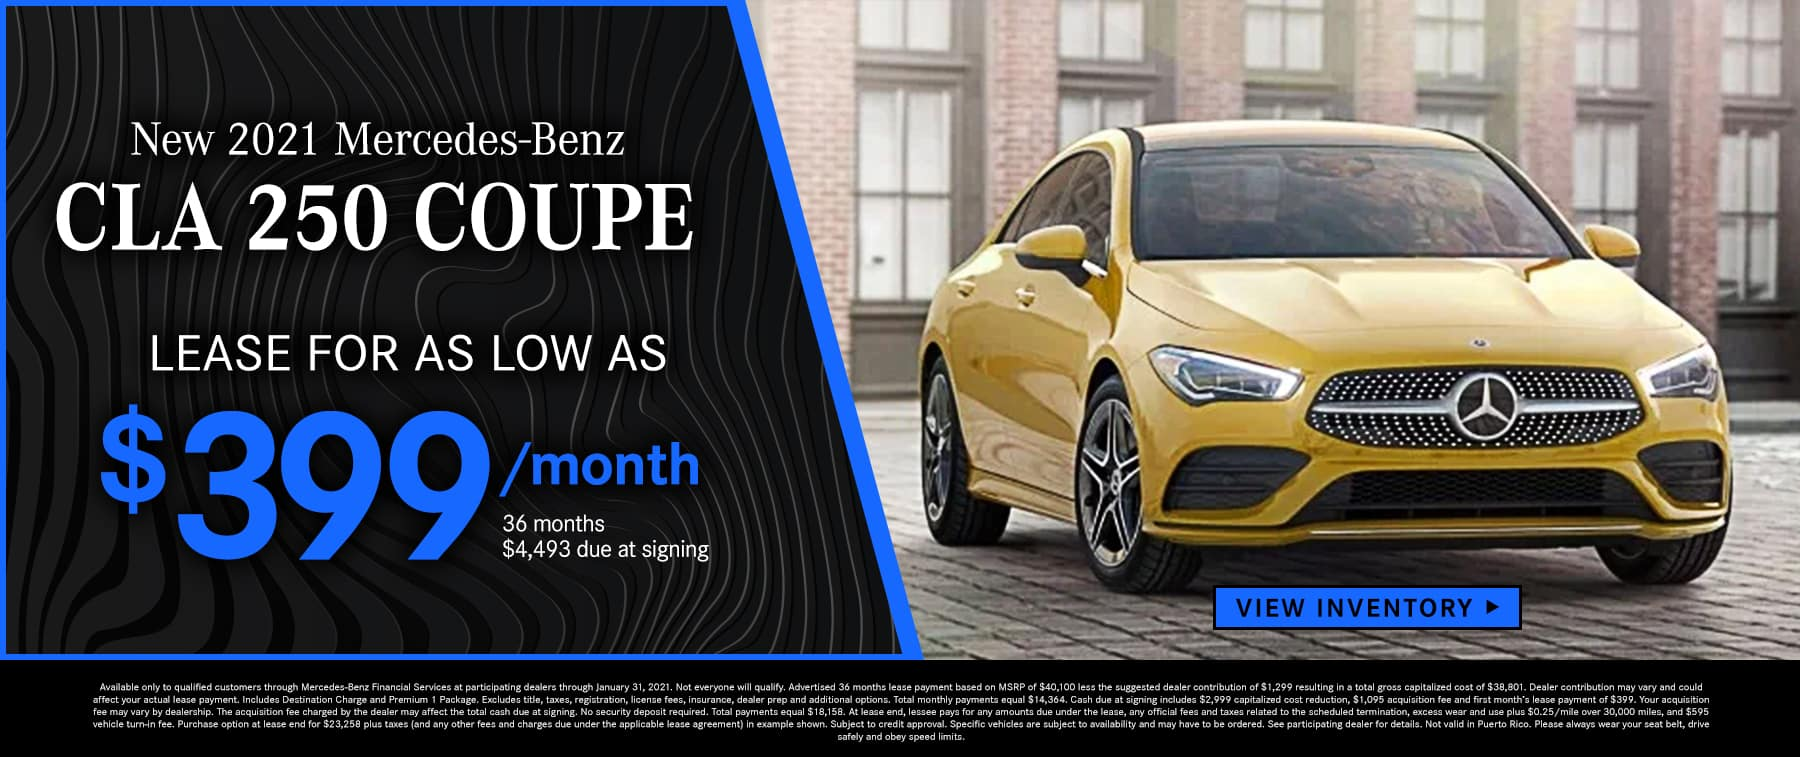 2021 CLA 250 Coupe Lease as low as $399 Per Month 36 Months/10k Miles $4,493 Due at signing